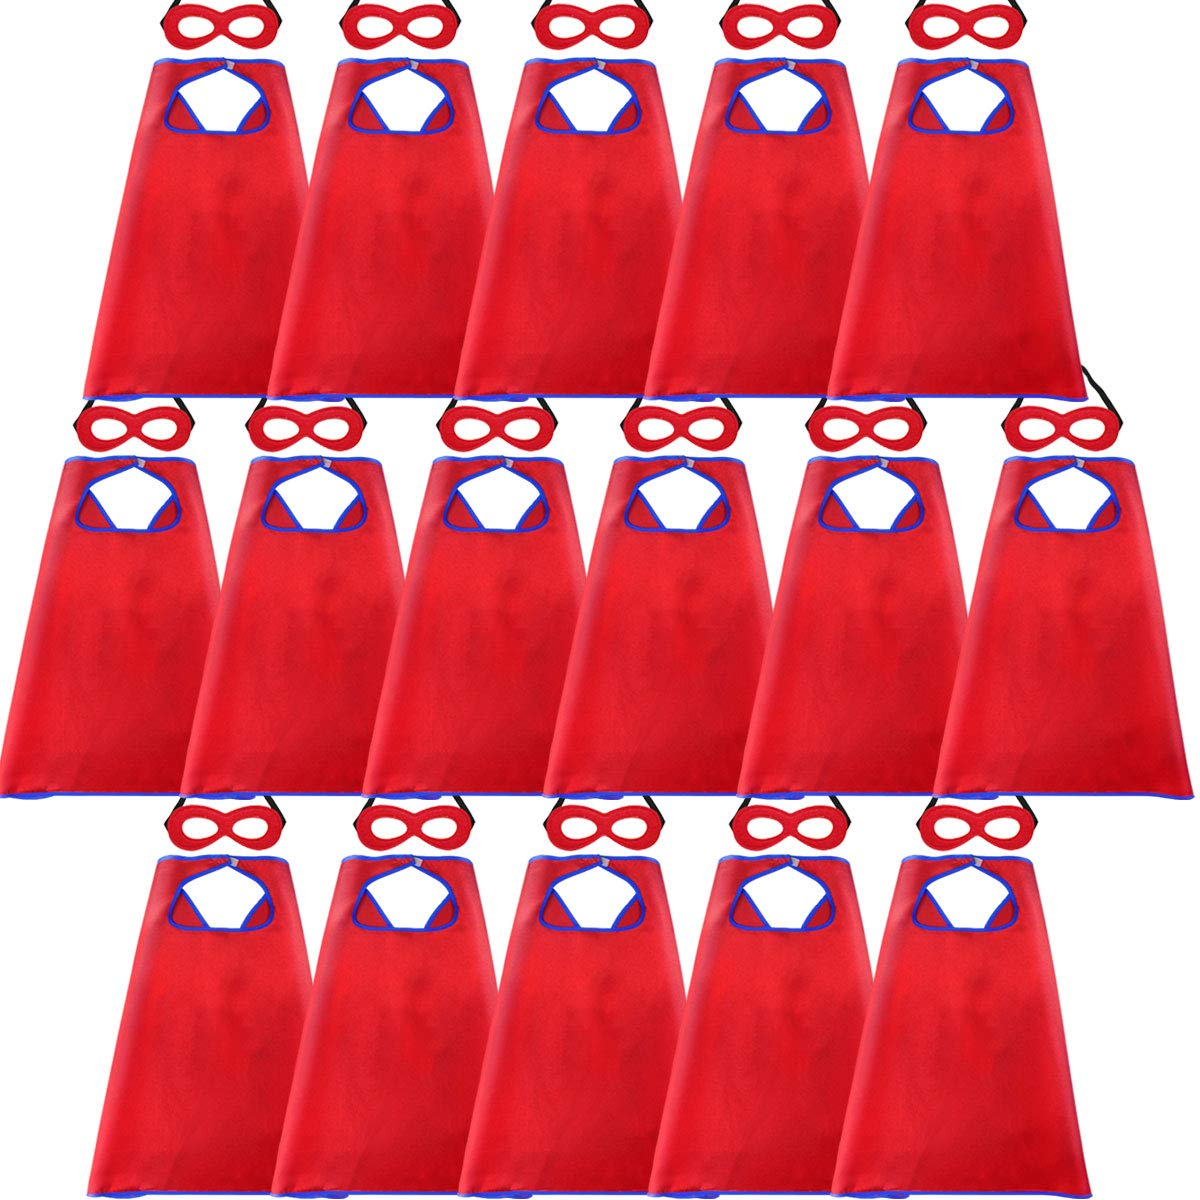 D.Q.Z Super Hero Capes for Kids Bulk with Masks Girls Boys Superhero Dress Up Party-16 Pack (Red)